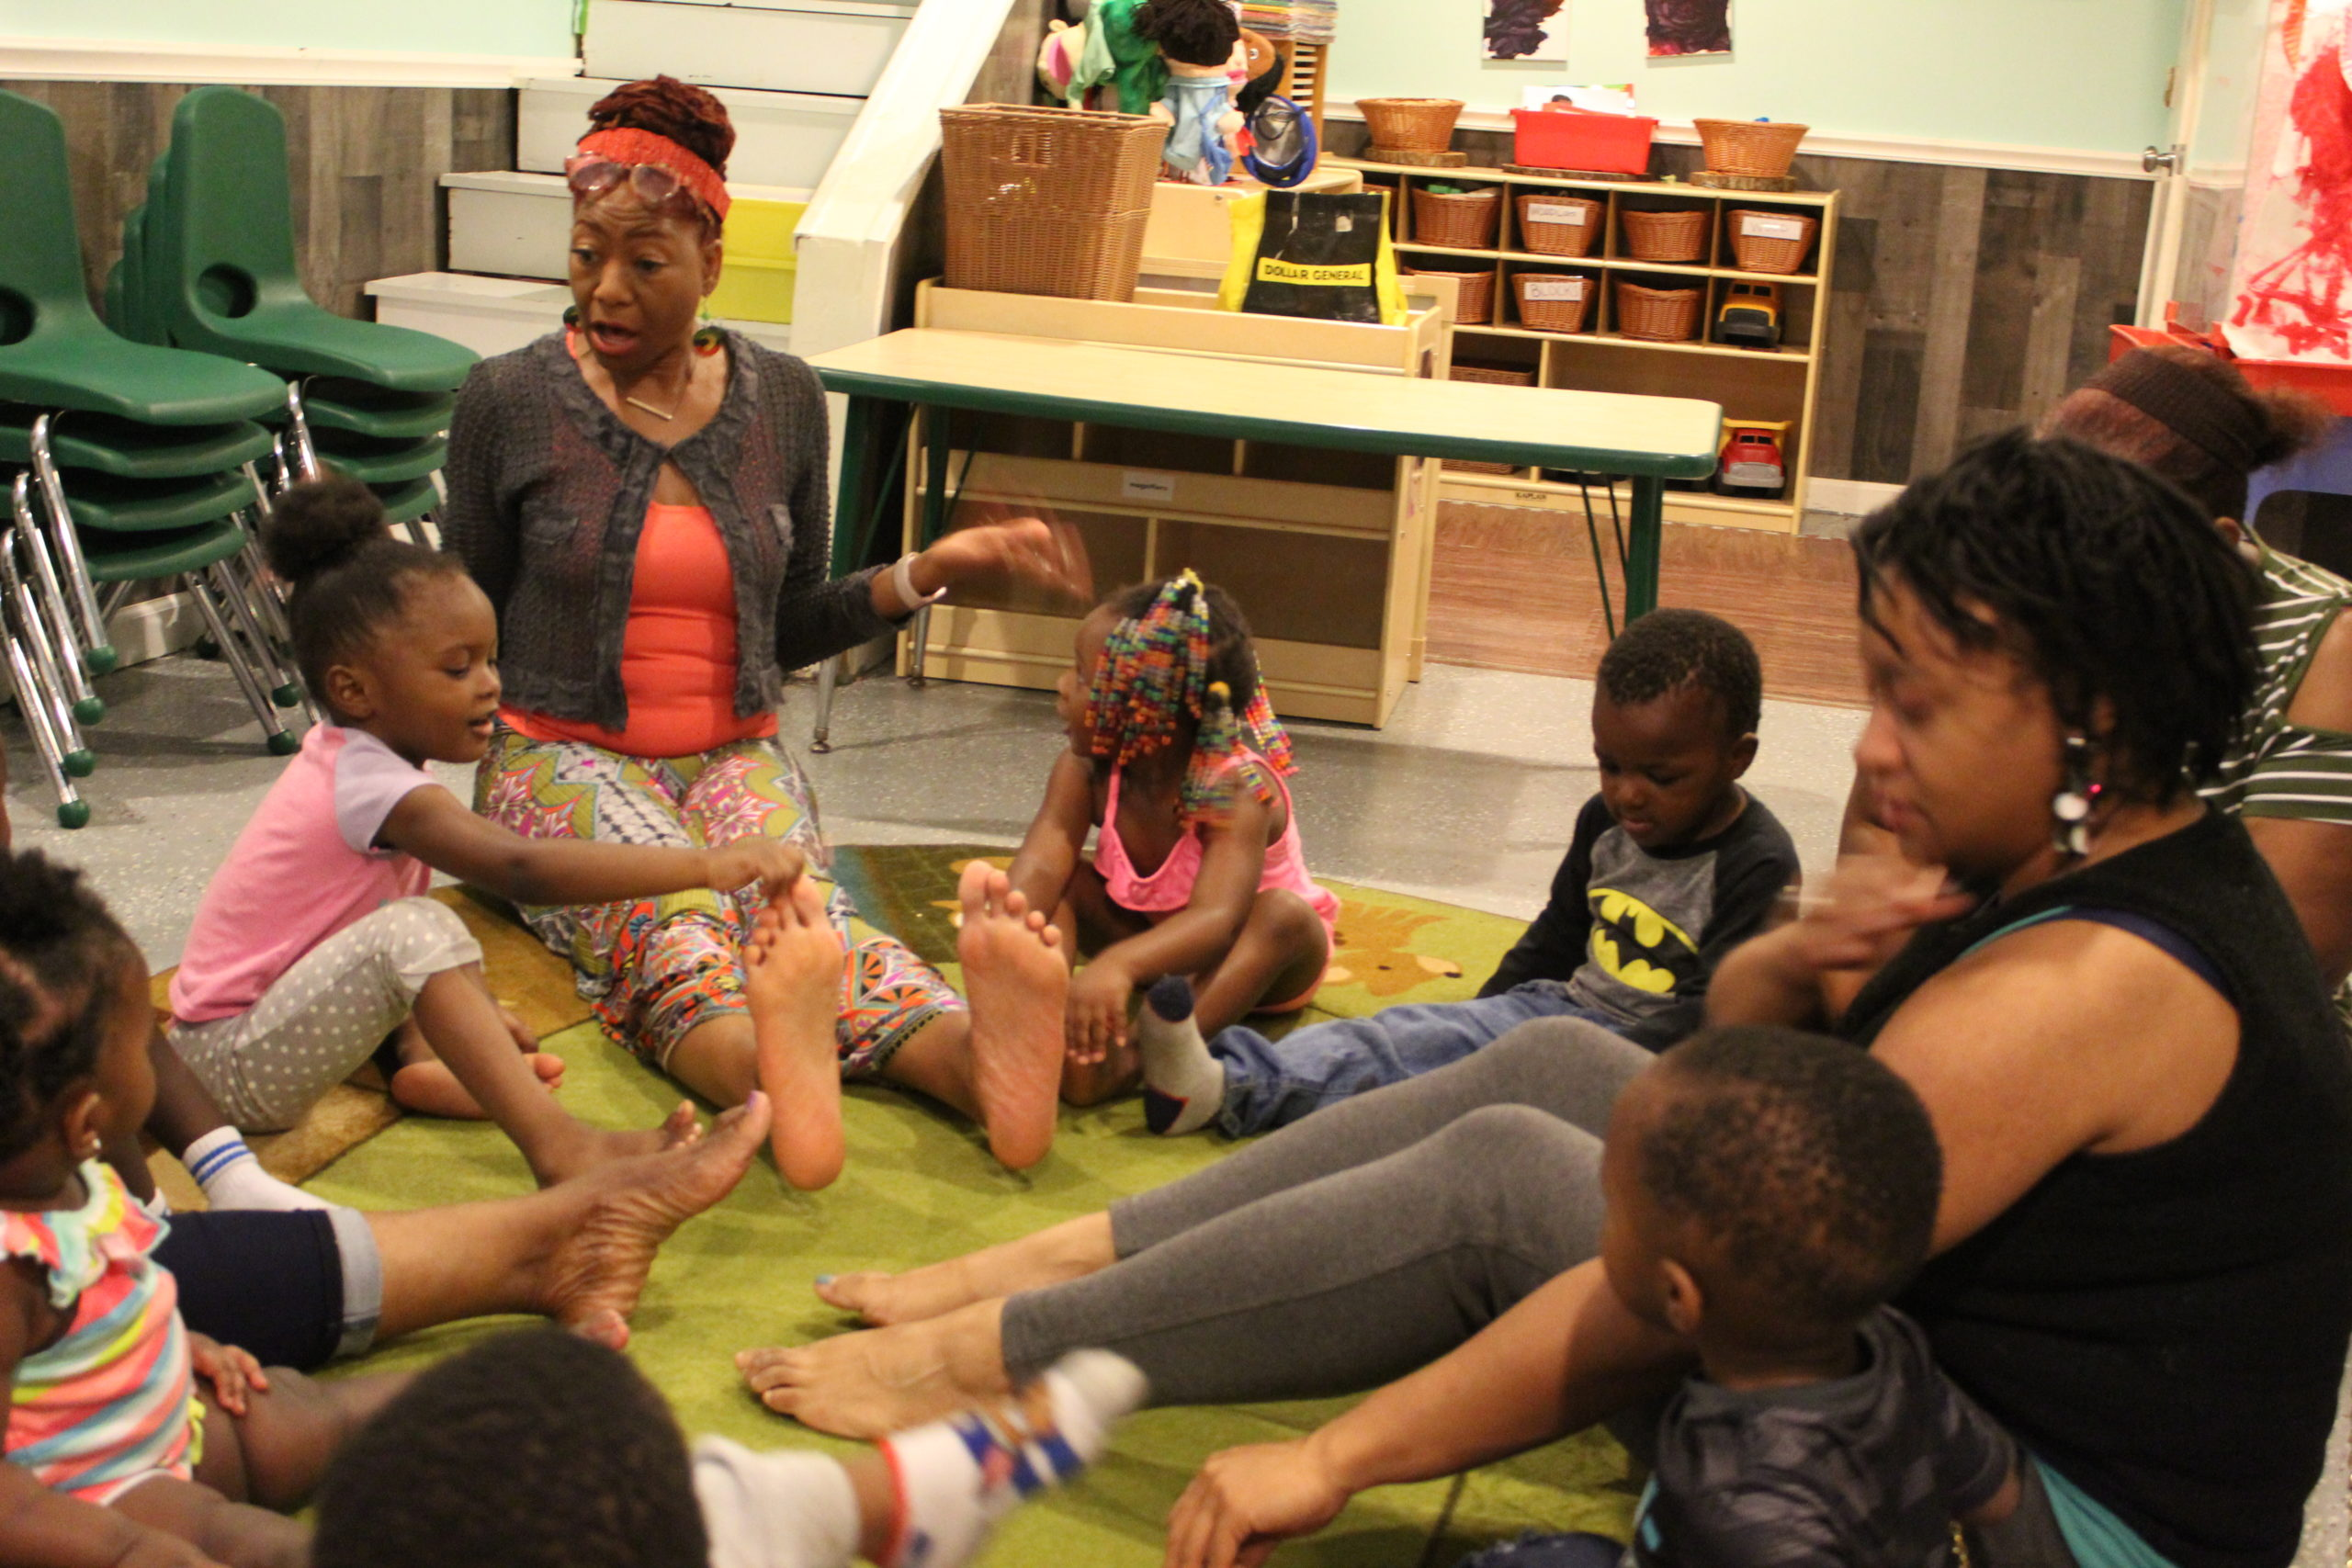 Dance class at Jill's Creative Learning, a home-based child care center in Detroit.